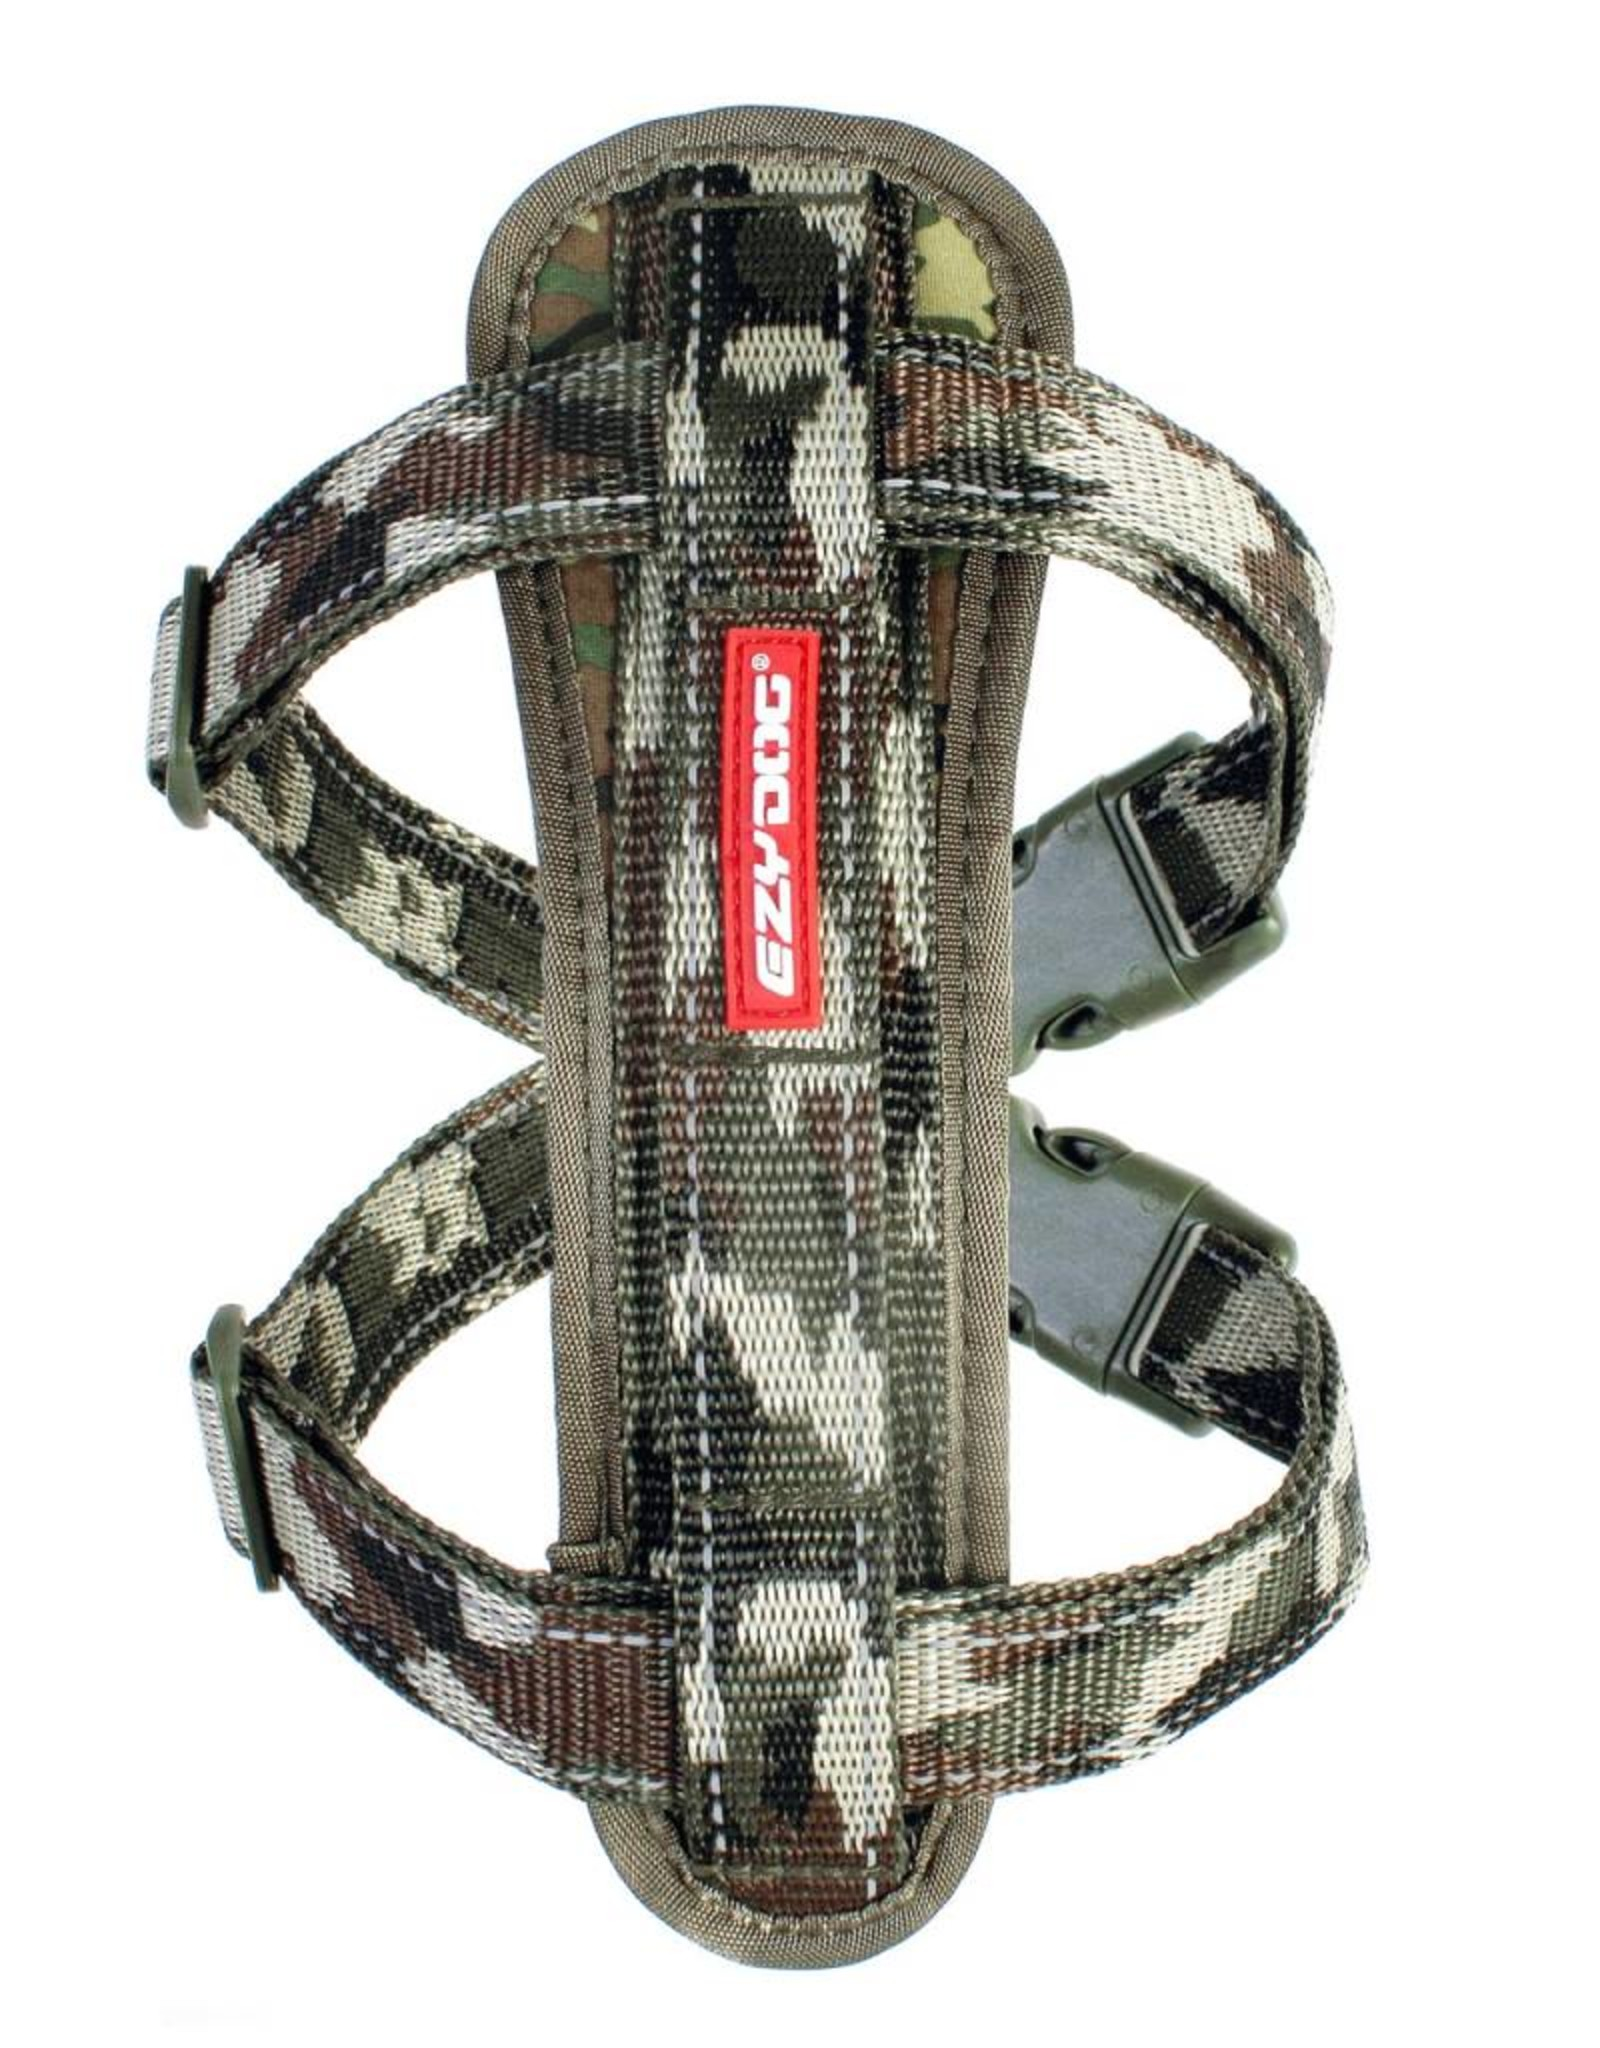 EzyDog Chest Plate Dog Harness with Seat Belt Loop, Green Camouflage